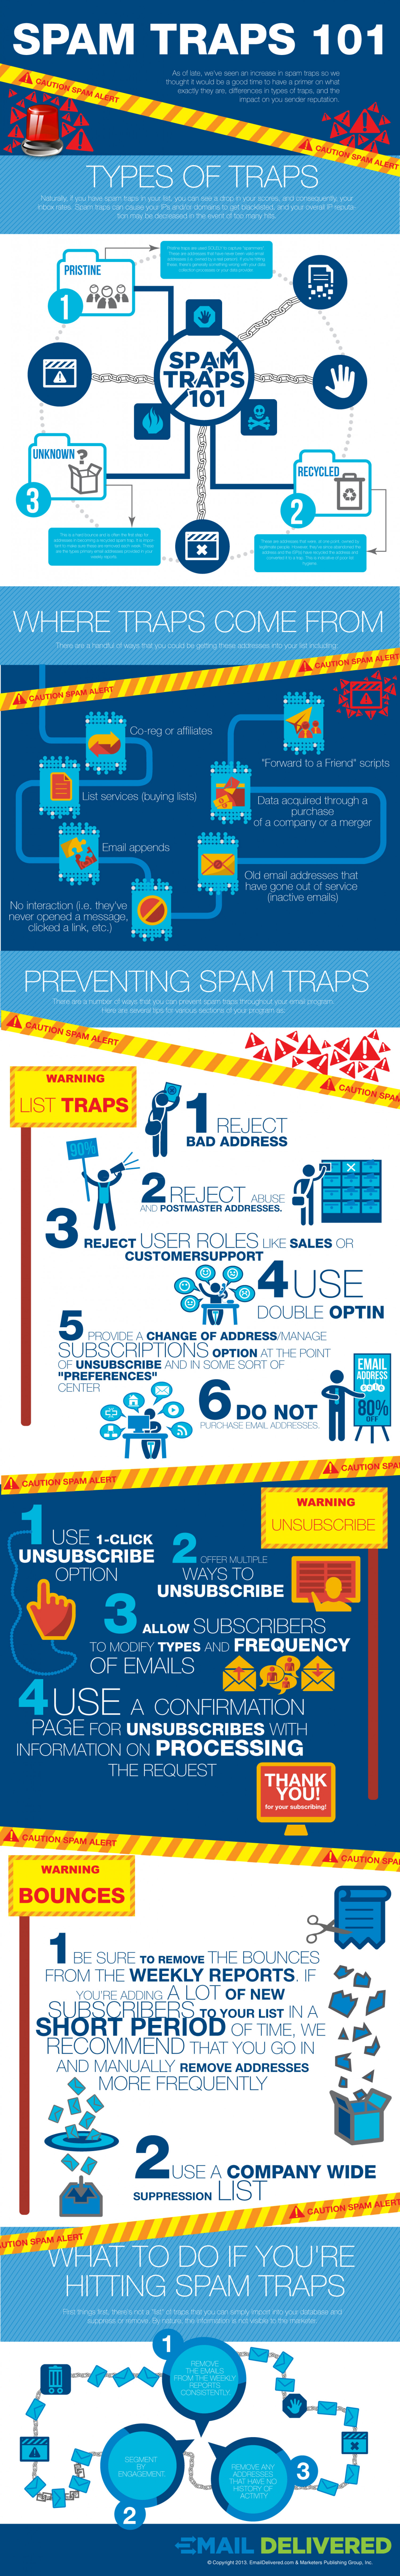 Spam Traps 101 Infographic